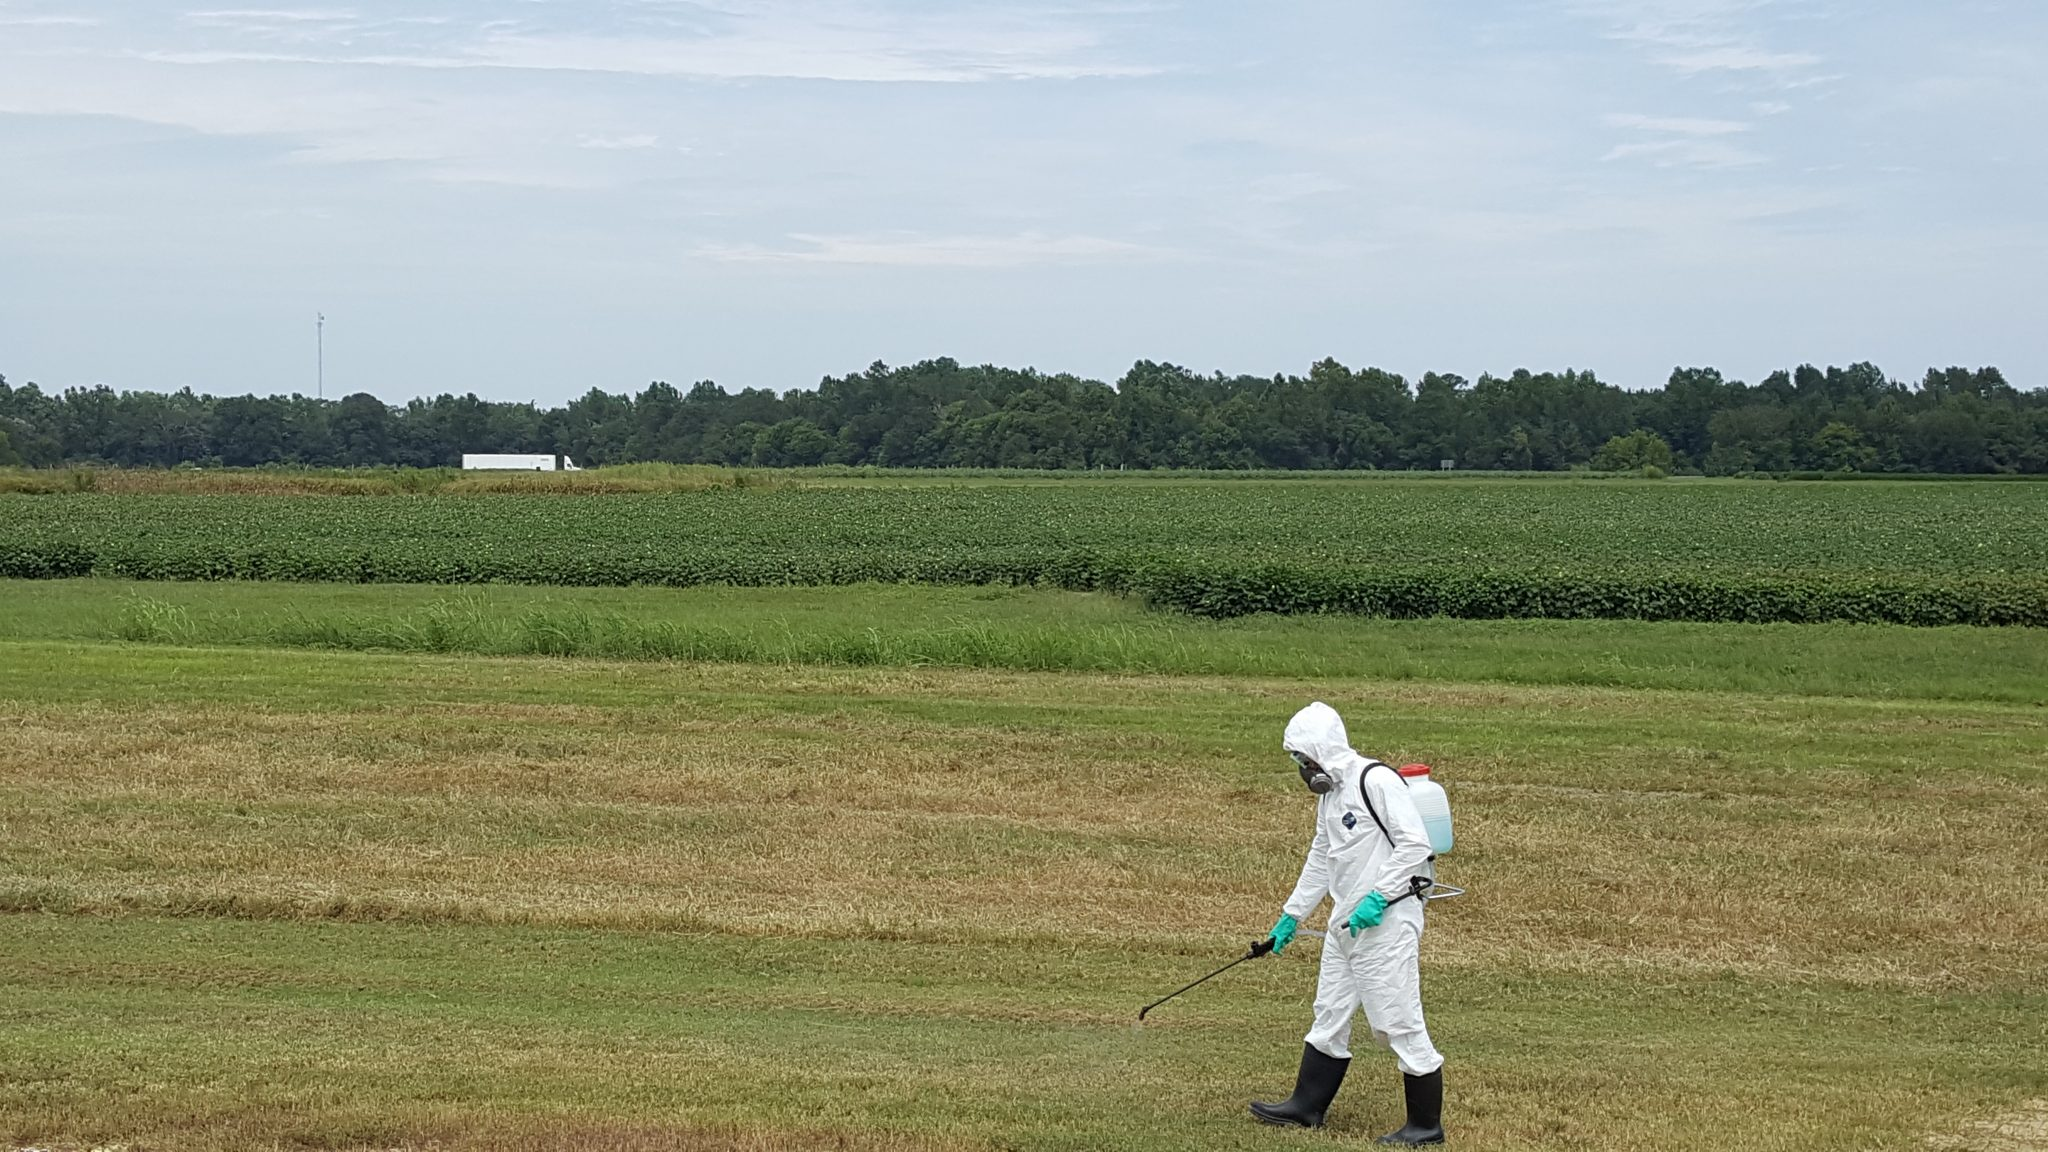 Pesticide Applicator in a Field